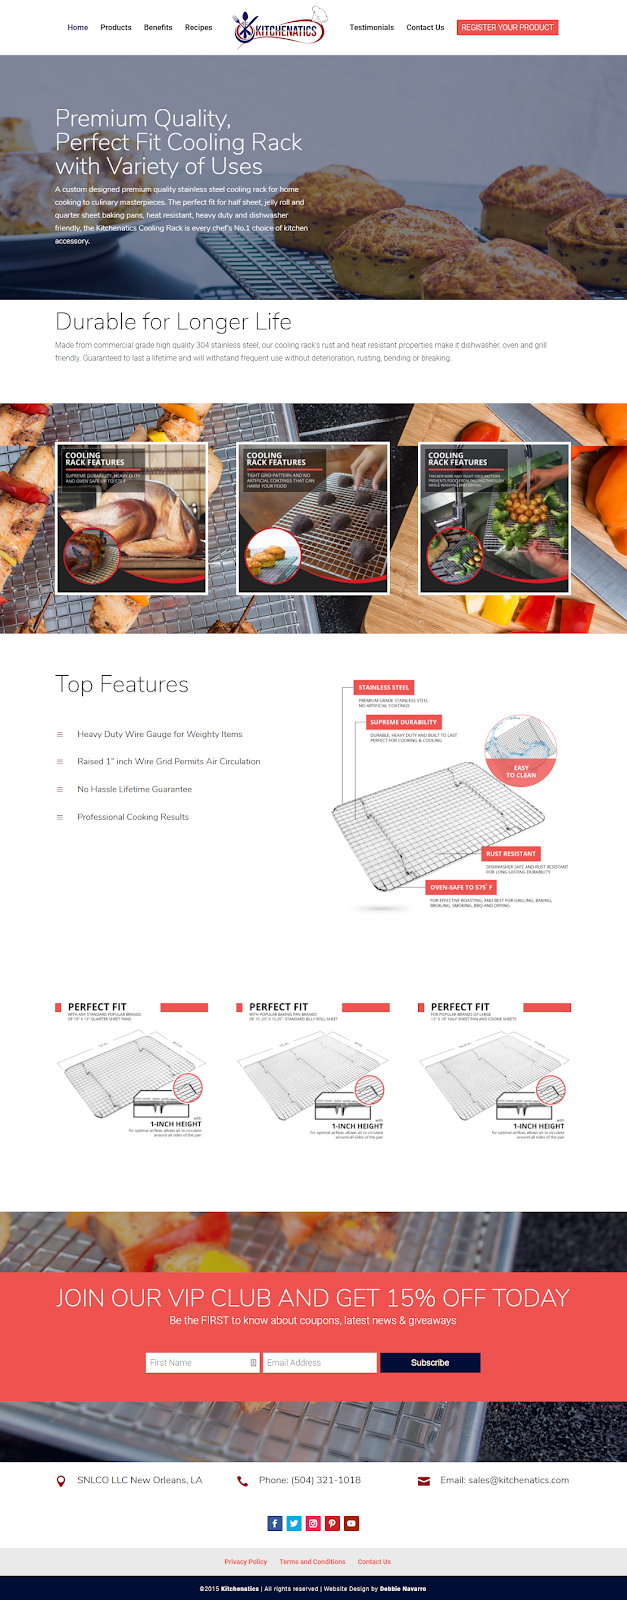 Kitchenatics Website Development